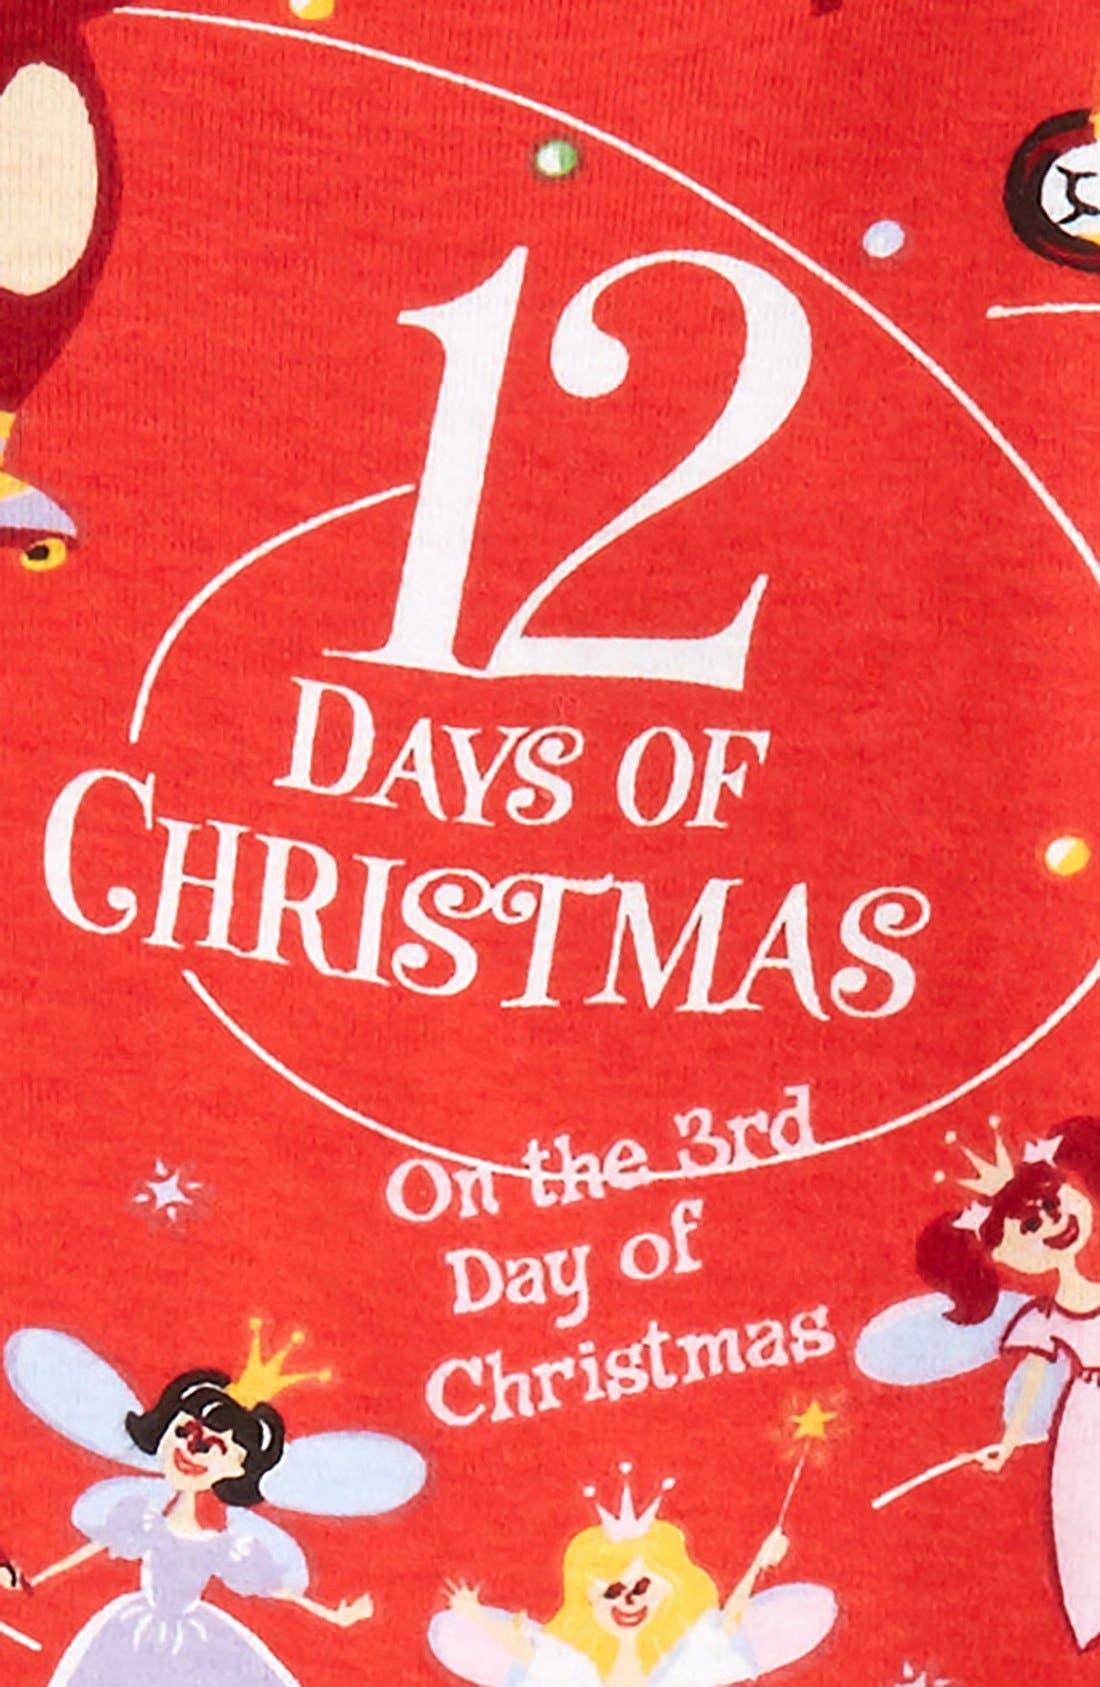 12 Days of Christmas Fitted Two-Piece Pajamas & Book Set,                             Alternate thumbnail 2, color,                             600